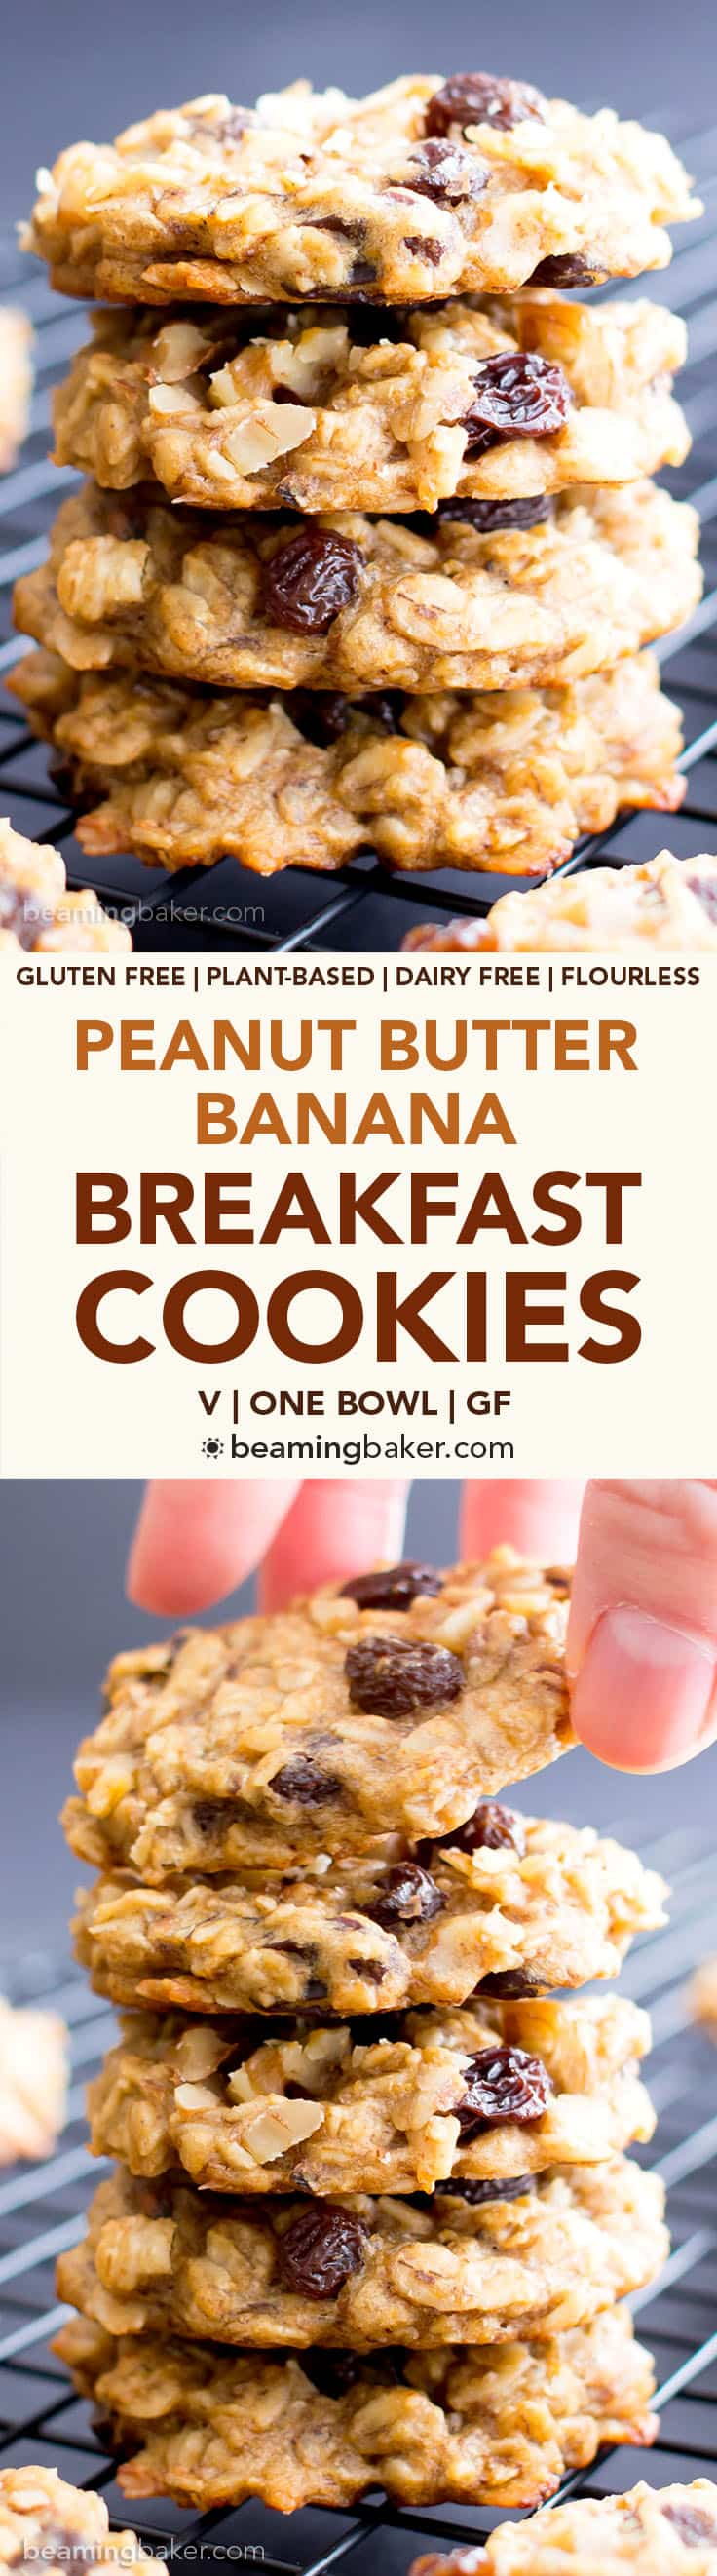 Easy Vegan Peanut Butter Banana Breakfast Cookies (V, GF): a one bowl recipe for chewy, protein-rich banana cookies, plus a great excuse to eat COOKIES for breakfast! #Vegan #GlutenFree #DairyFree #Breakfast | BeamingBaker.com